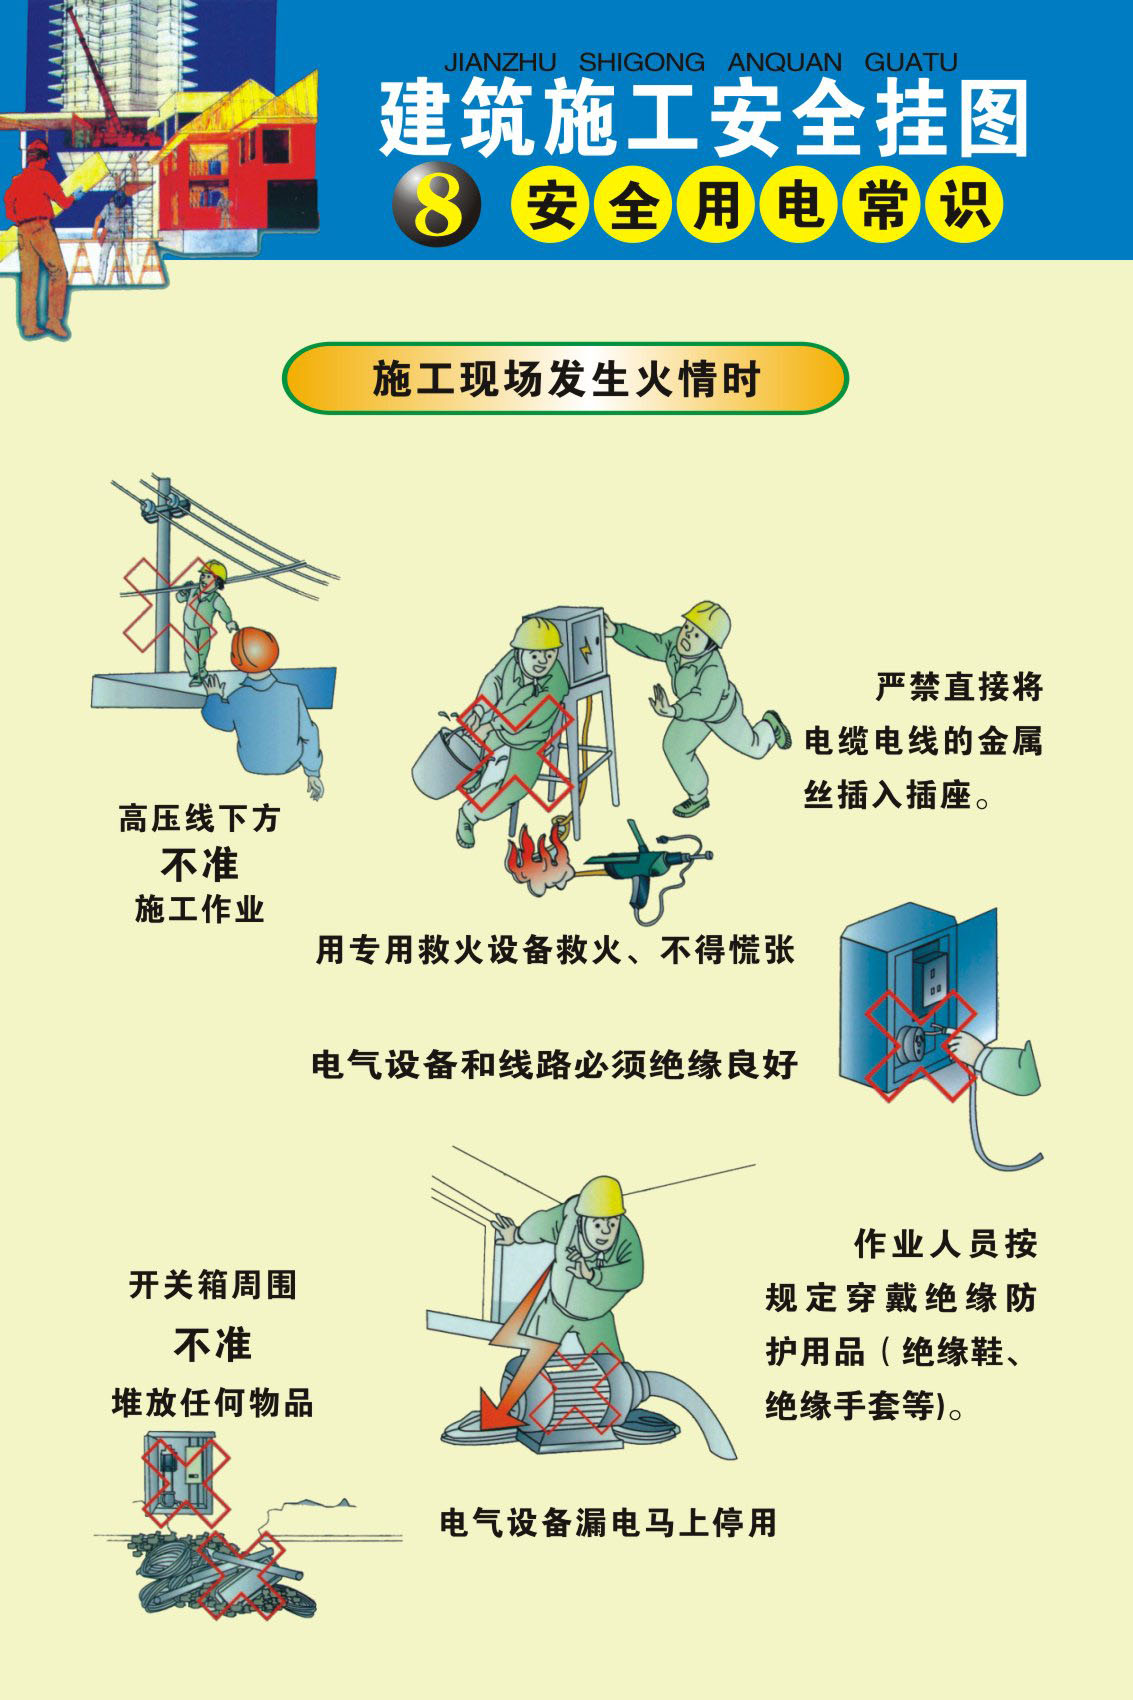 722 poster panels inkjet printed 283 construction site construction safety wall charts 4 electrical safety knowledge